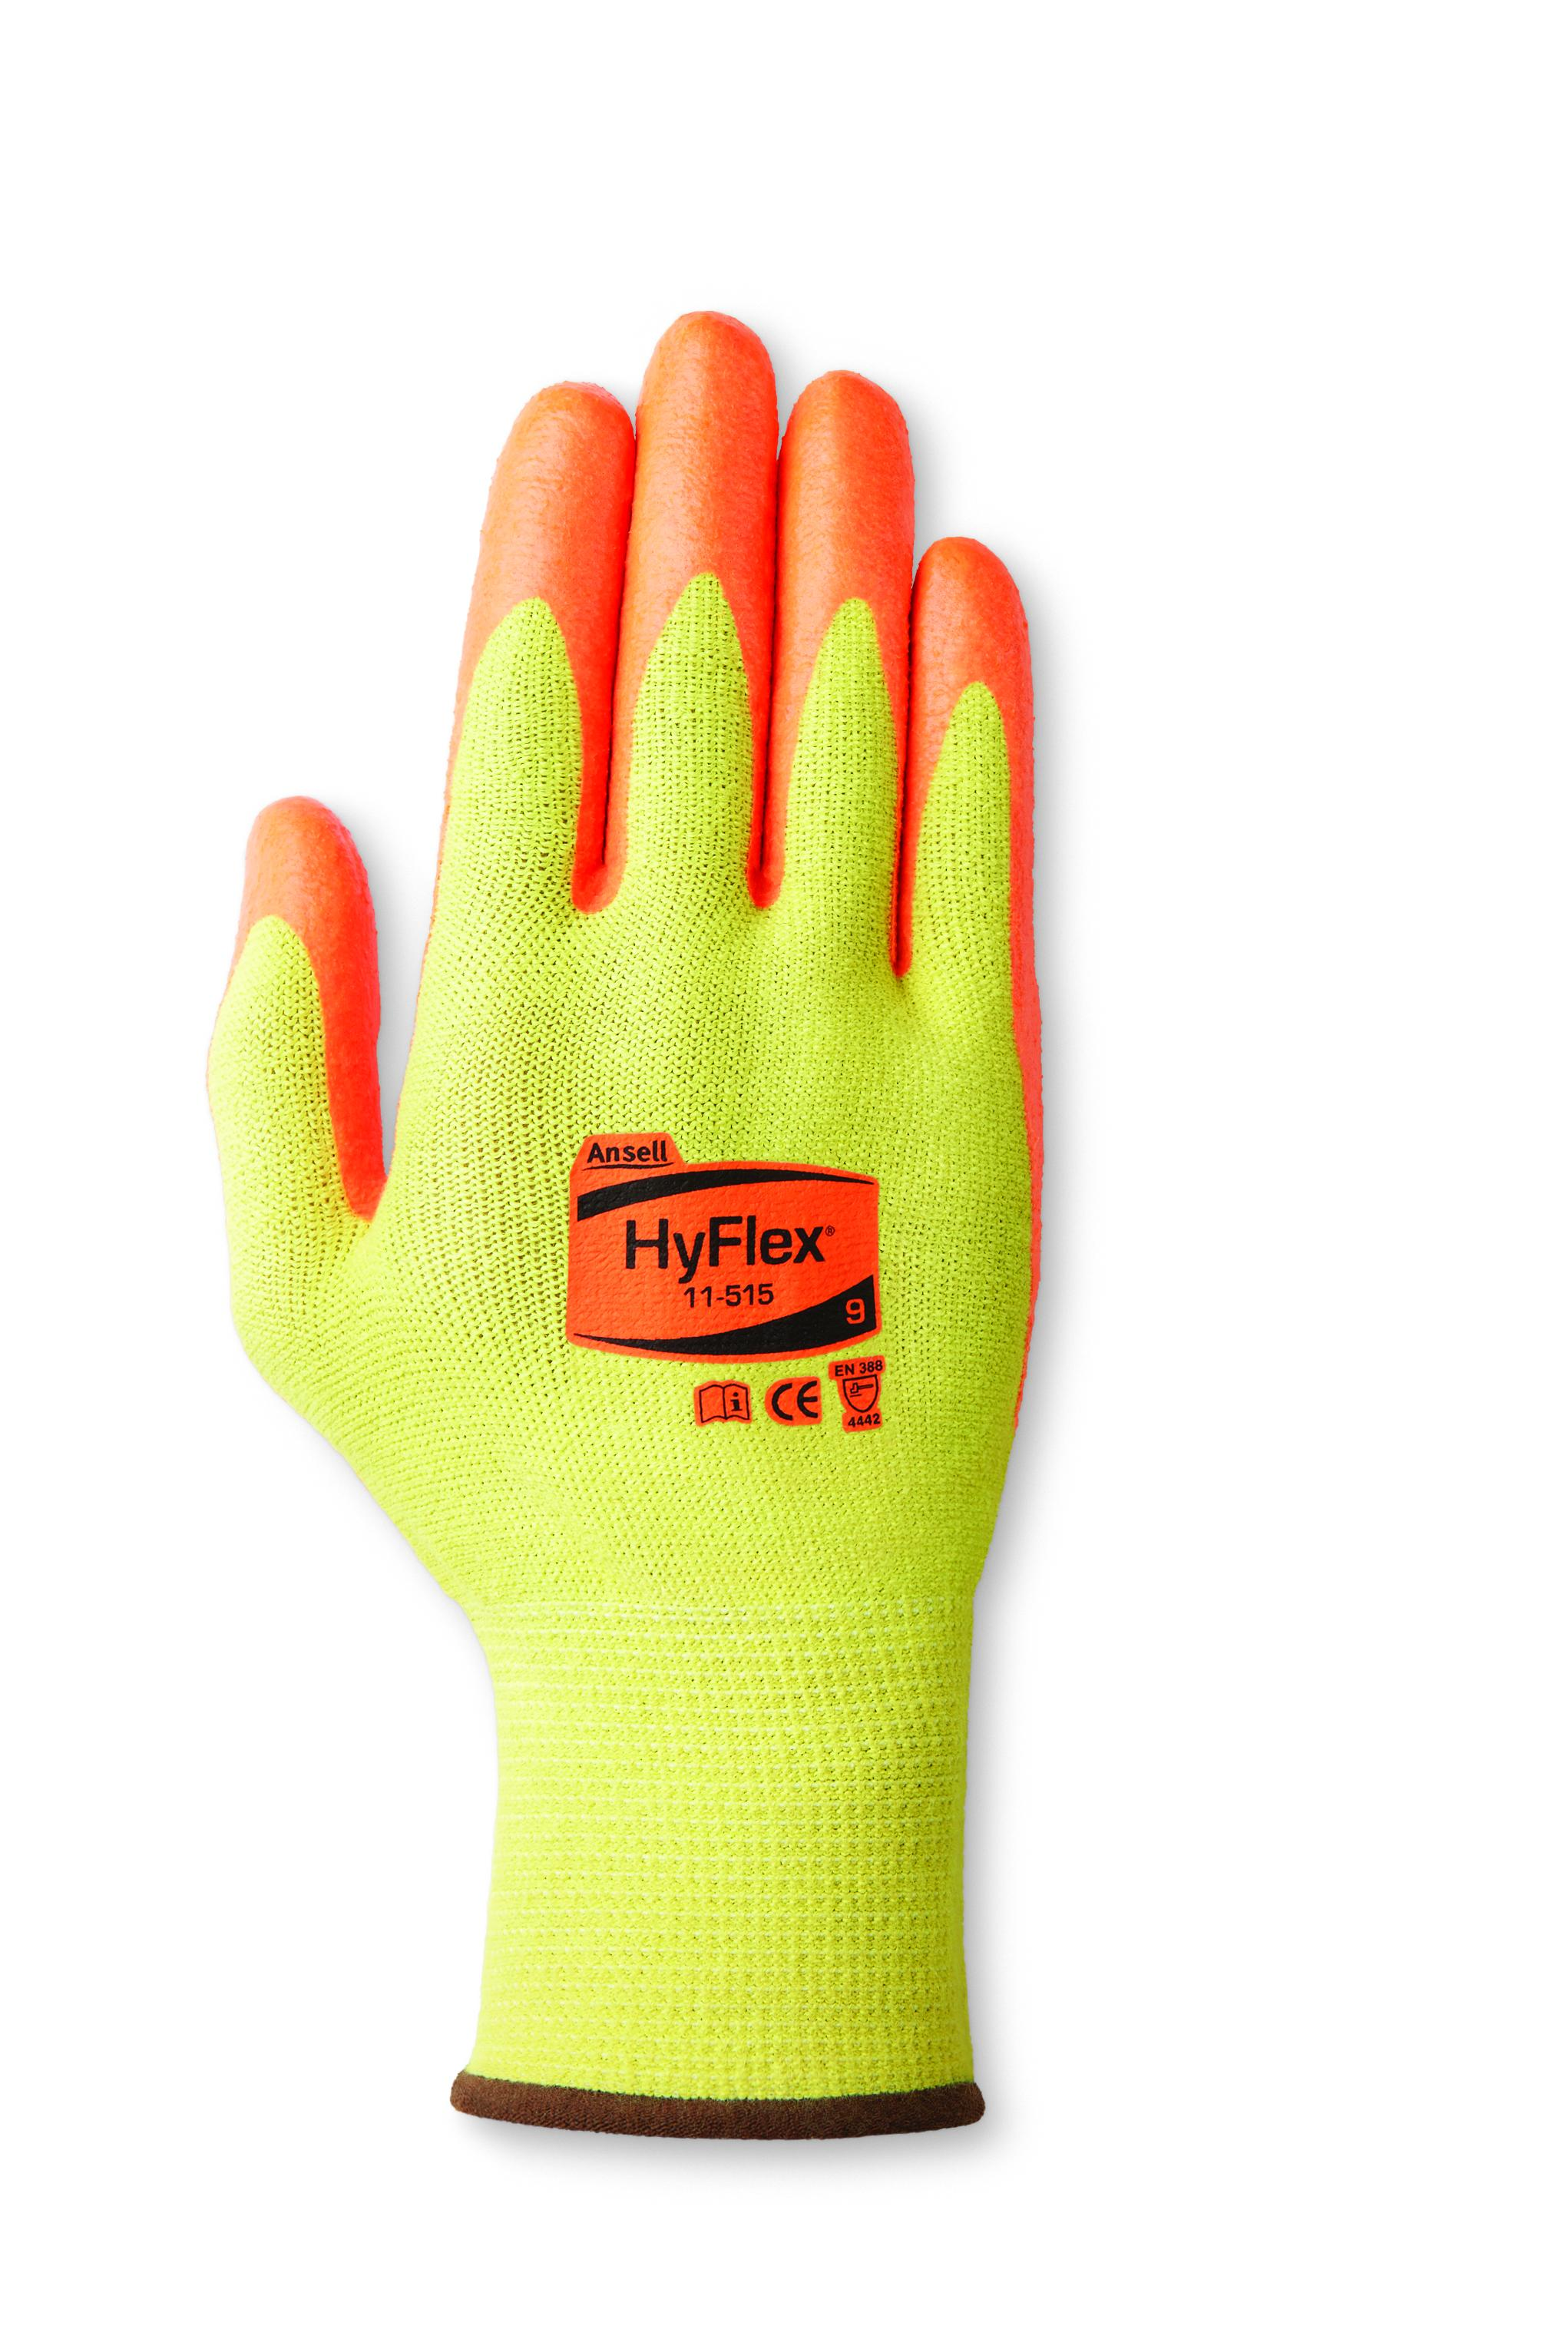 Ansell Launches High Visibility Glove With Ansi Level 4